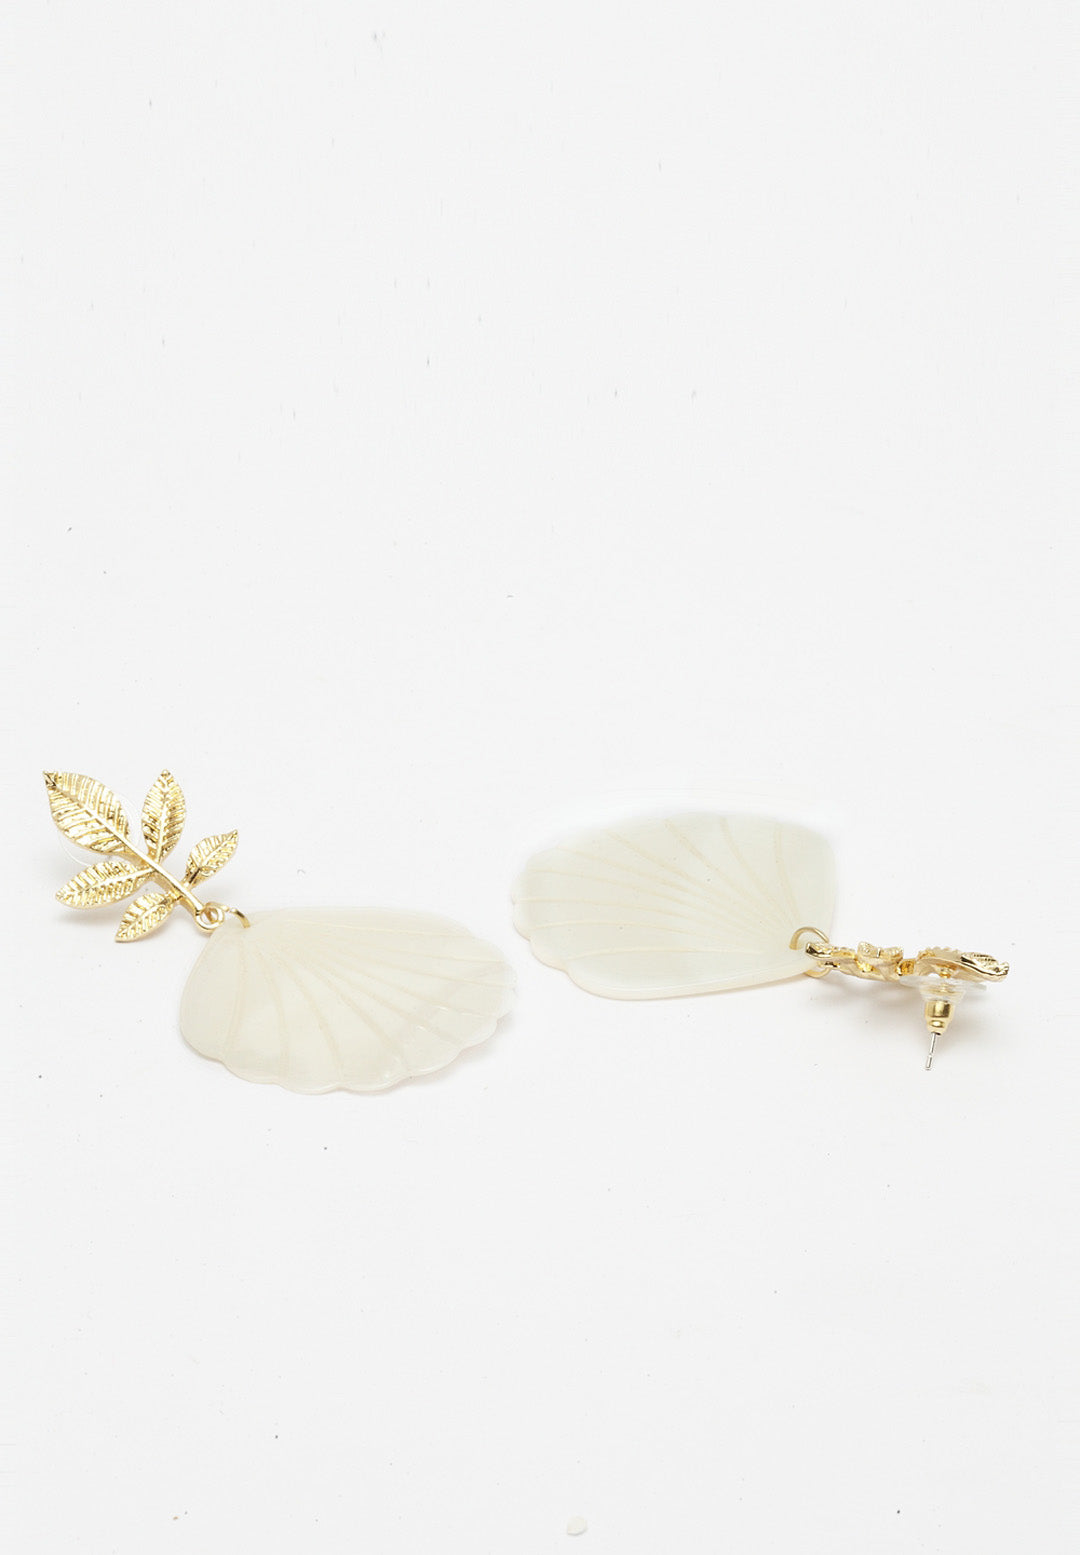 Avant-Garde Paris Modish Gold-Plated Shell Earrings